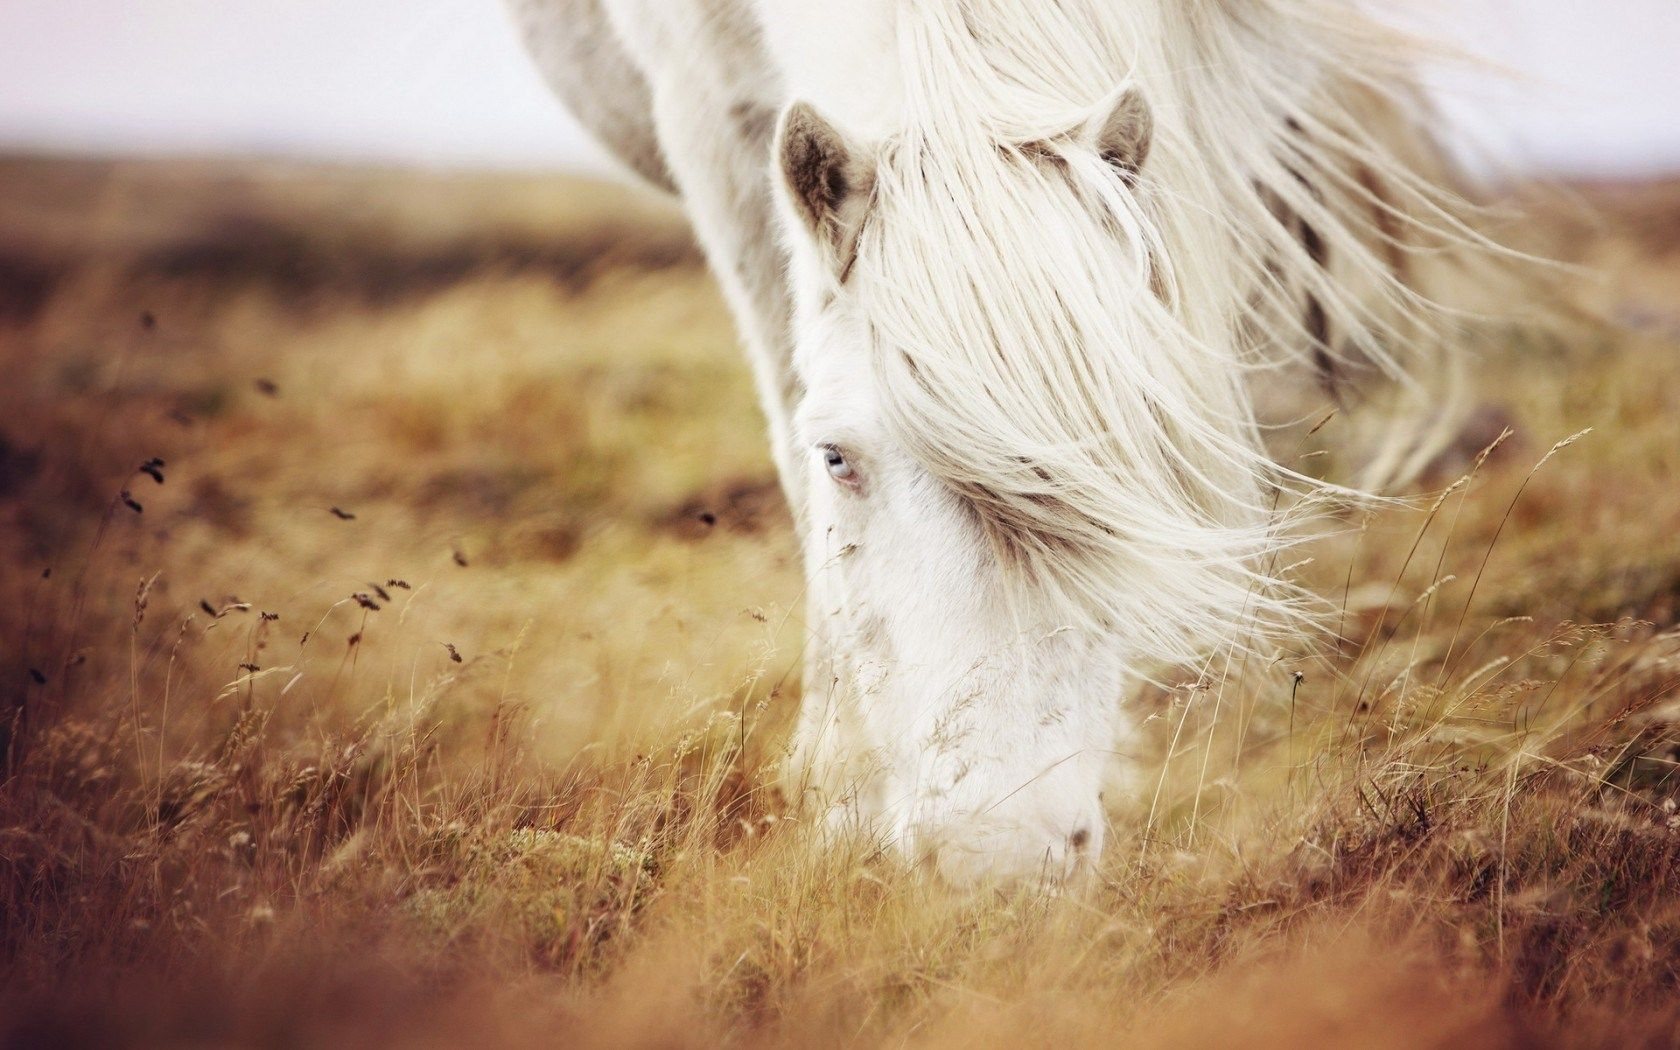 Amazing   Wallpaper Horse Vintage - bfdff8a8387f54901fdc18fa73549cdf  Trends_30975.jpg